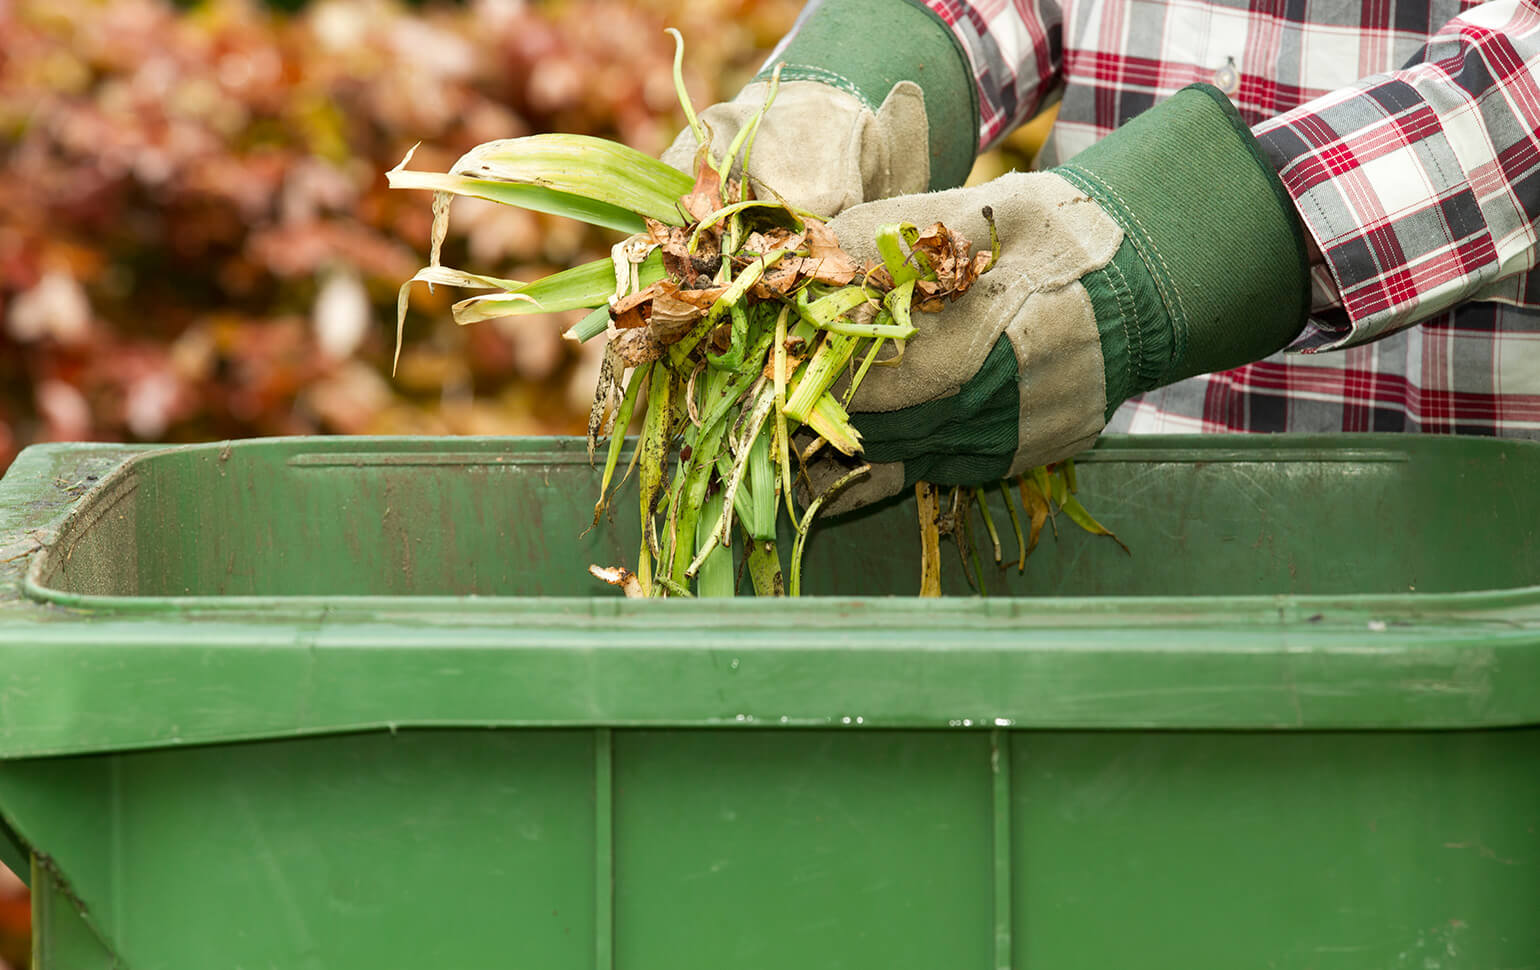 Don't mistake compost for manure.